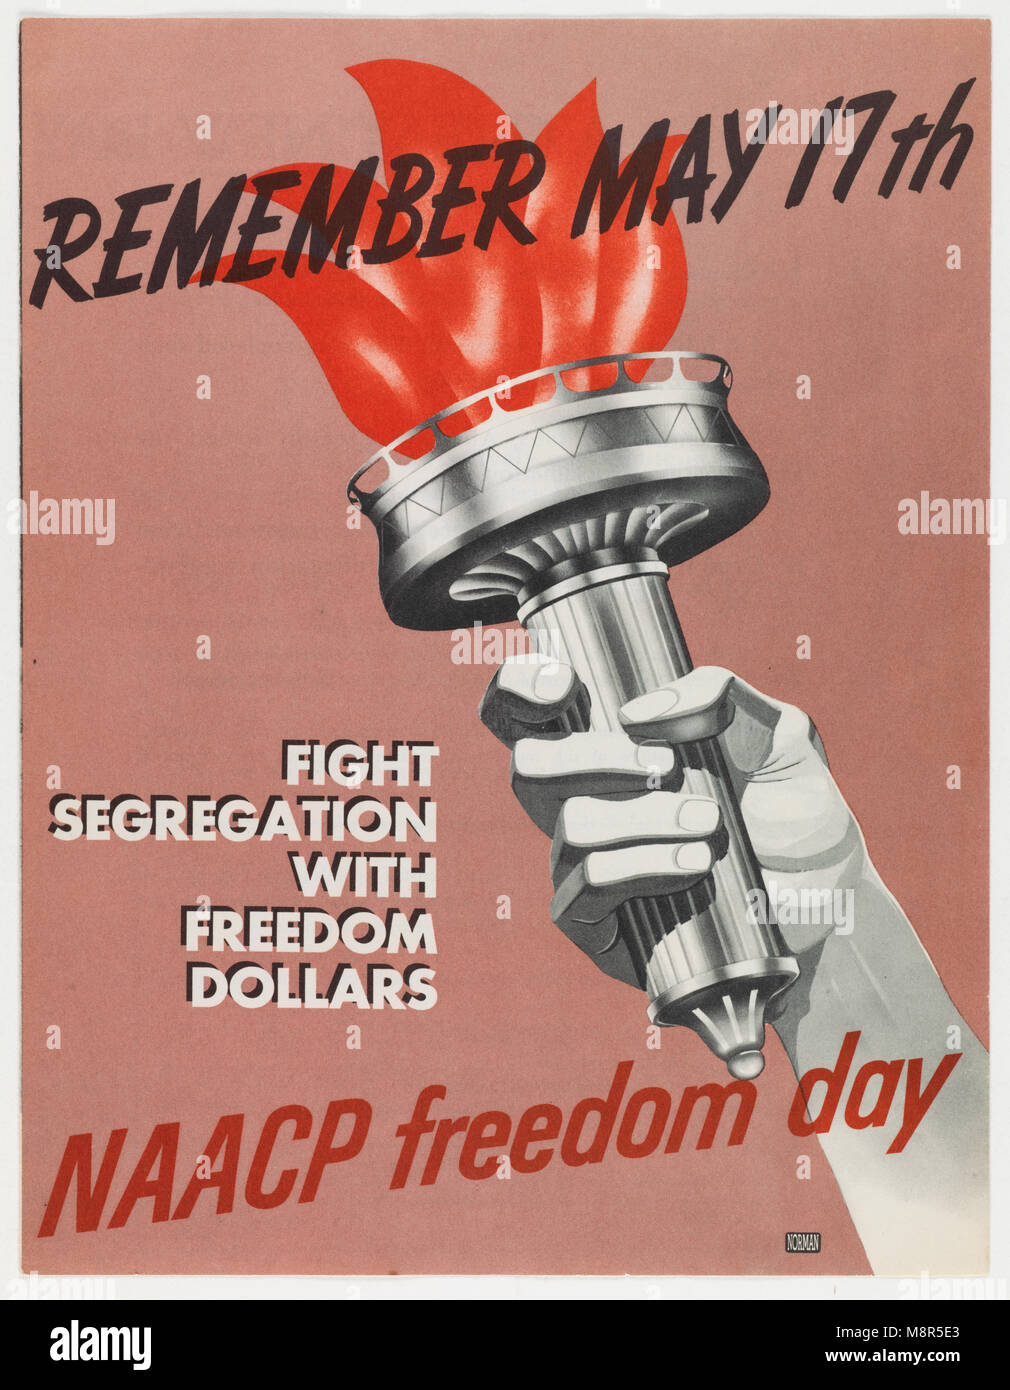 Remember May 17th, Fight Segregation with Freedom Dollars, 1955 - Stock Image